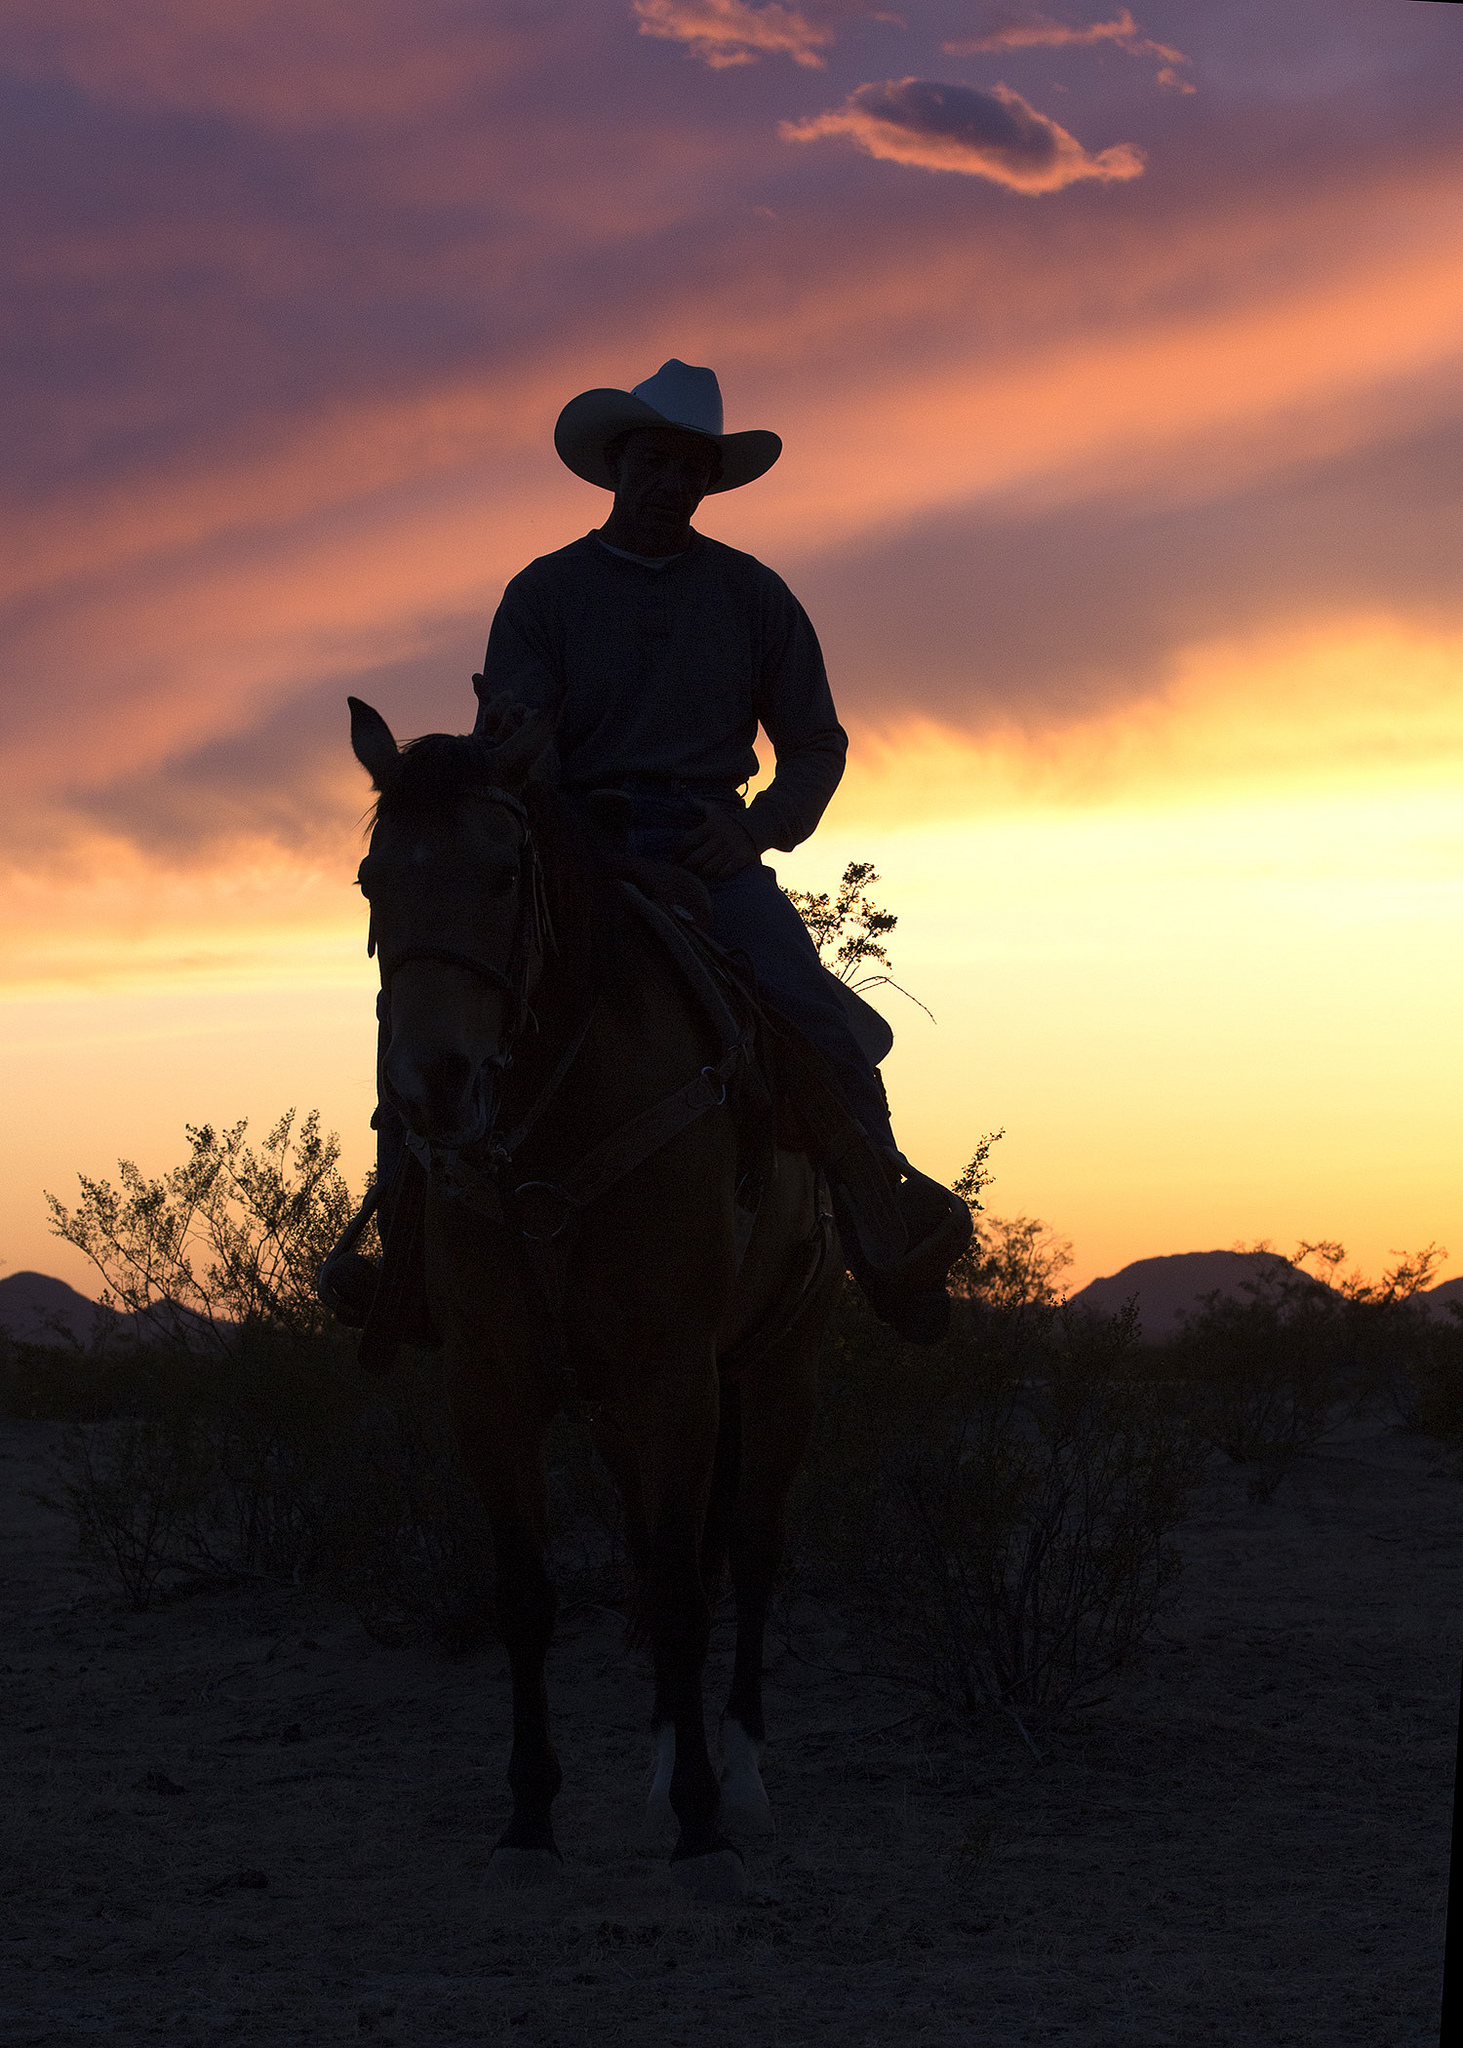 """""""Riding off into the sunset"""" isn't a romantic cowboy thing ... it's a necessity these days. Flickr/Tom Stokes/CC"""